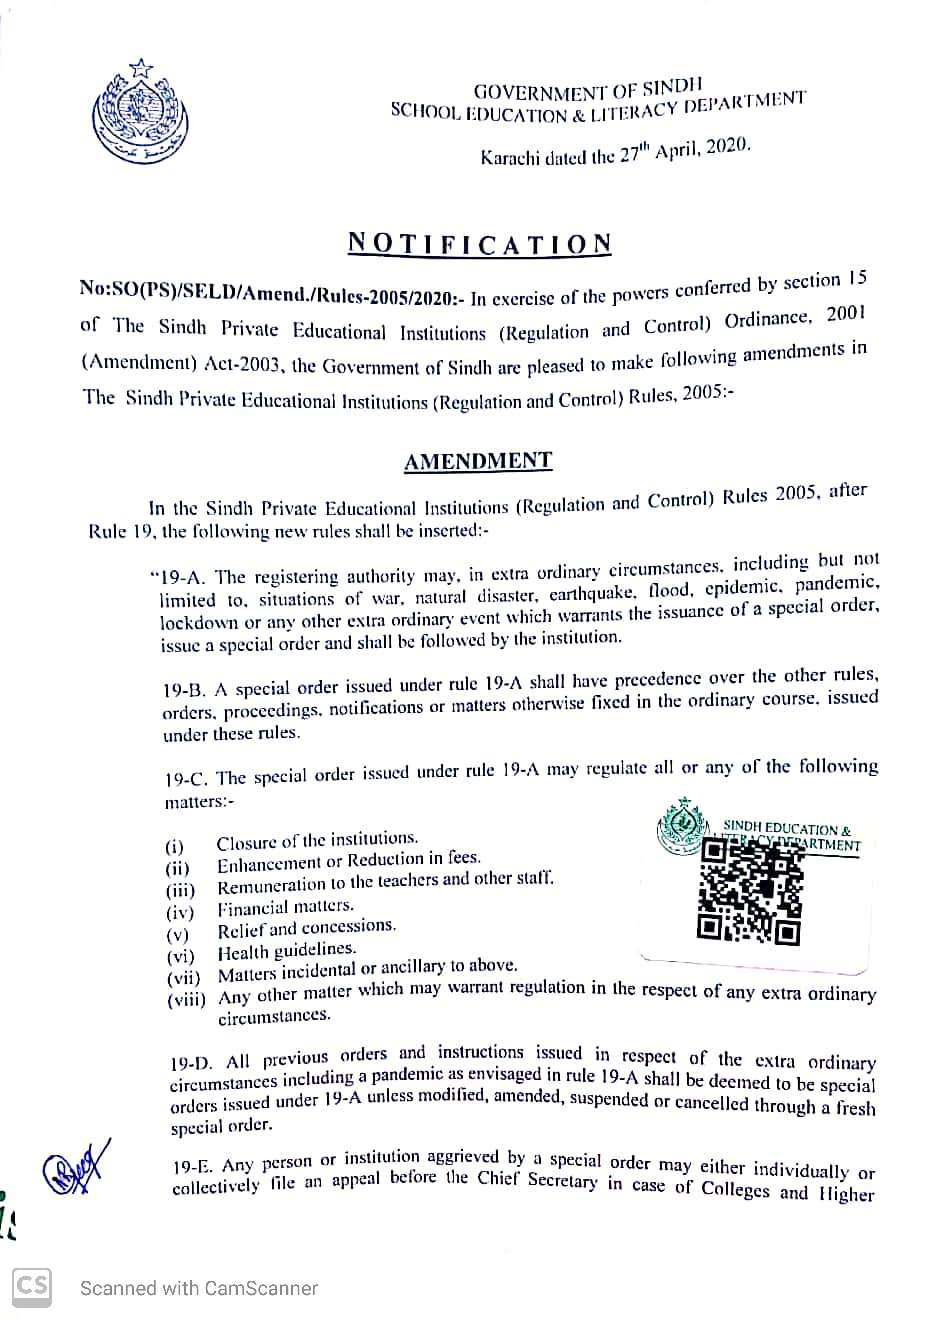 Amendment Sindh Private Educational Institutions (Regulation and Control) Rules 2005